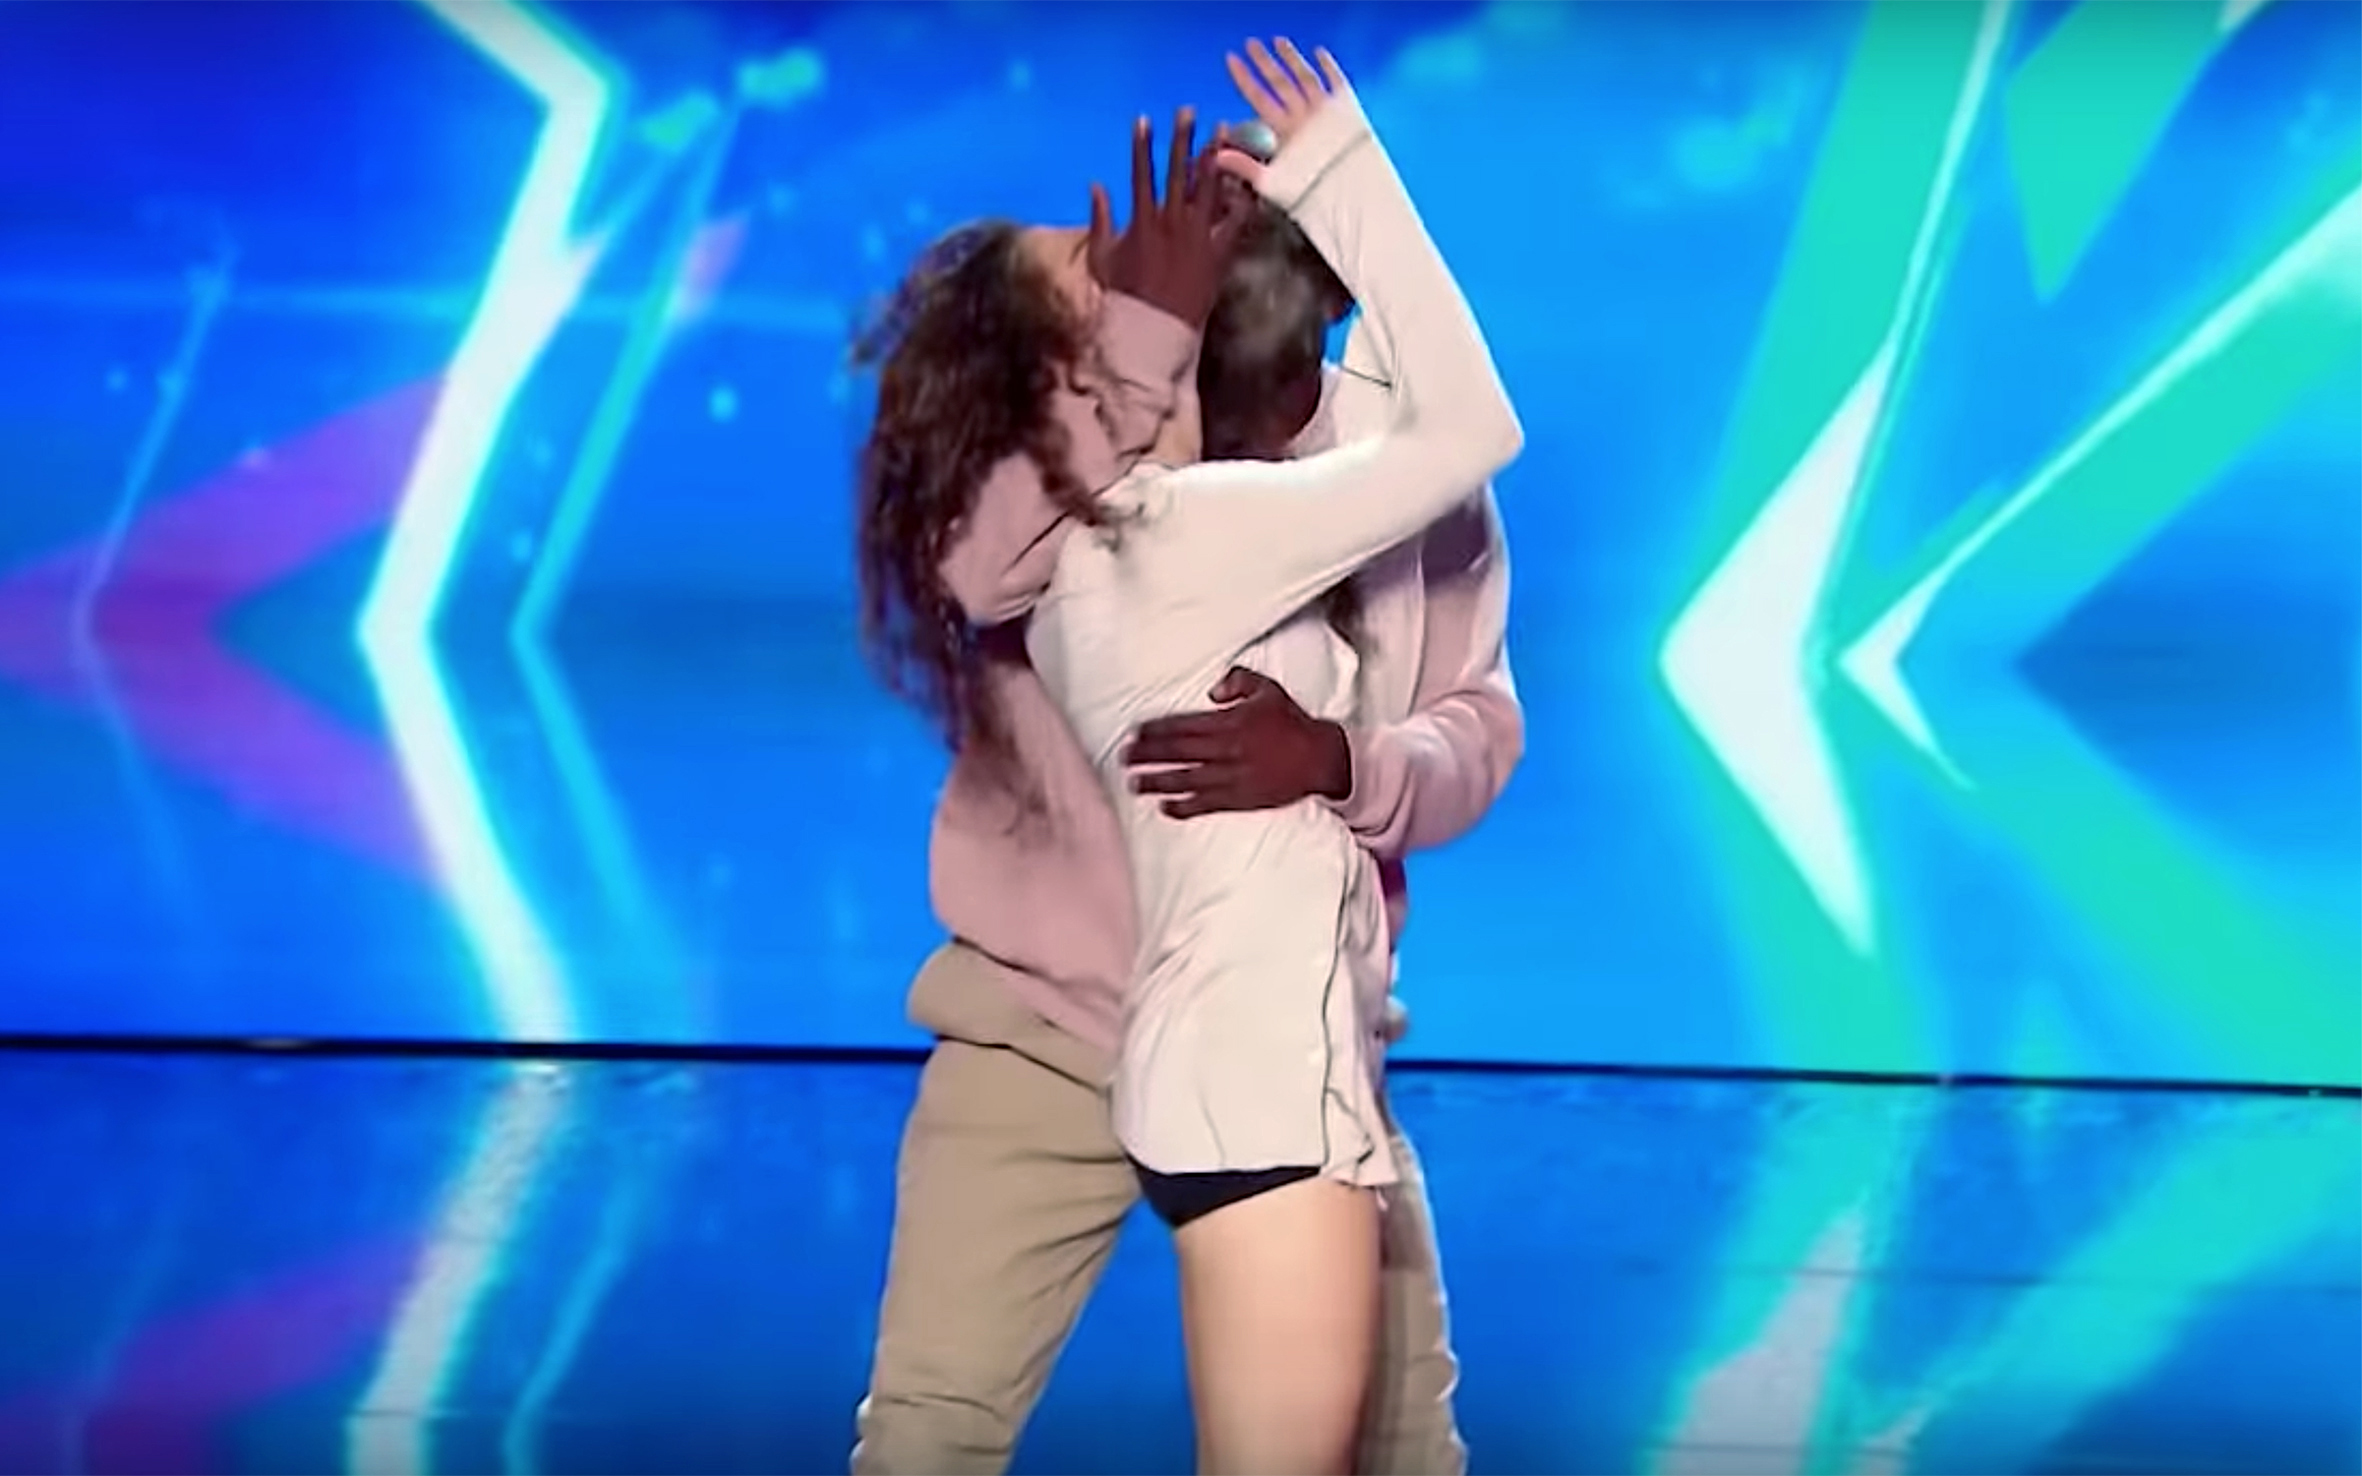 267. EMOTIONAL DANCE AGAINST DOMESTIC VIOLENCE / France - EMOTIONAL DANCE AGAINST DOMESTIC VIOLENCE is a dance performed by Dakota and Nadia on France Got Talent 2018. They performed a very emotional contact dance on the subject of domestic violence against women, to raise awarenes about this subject and they left the whole audience in tears.